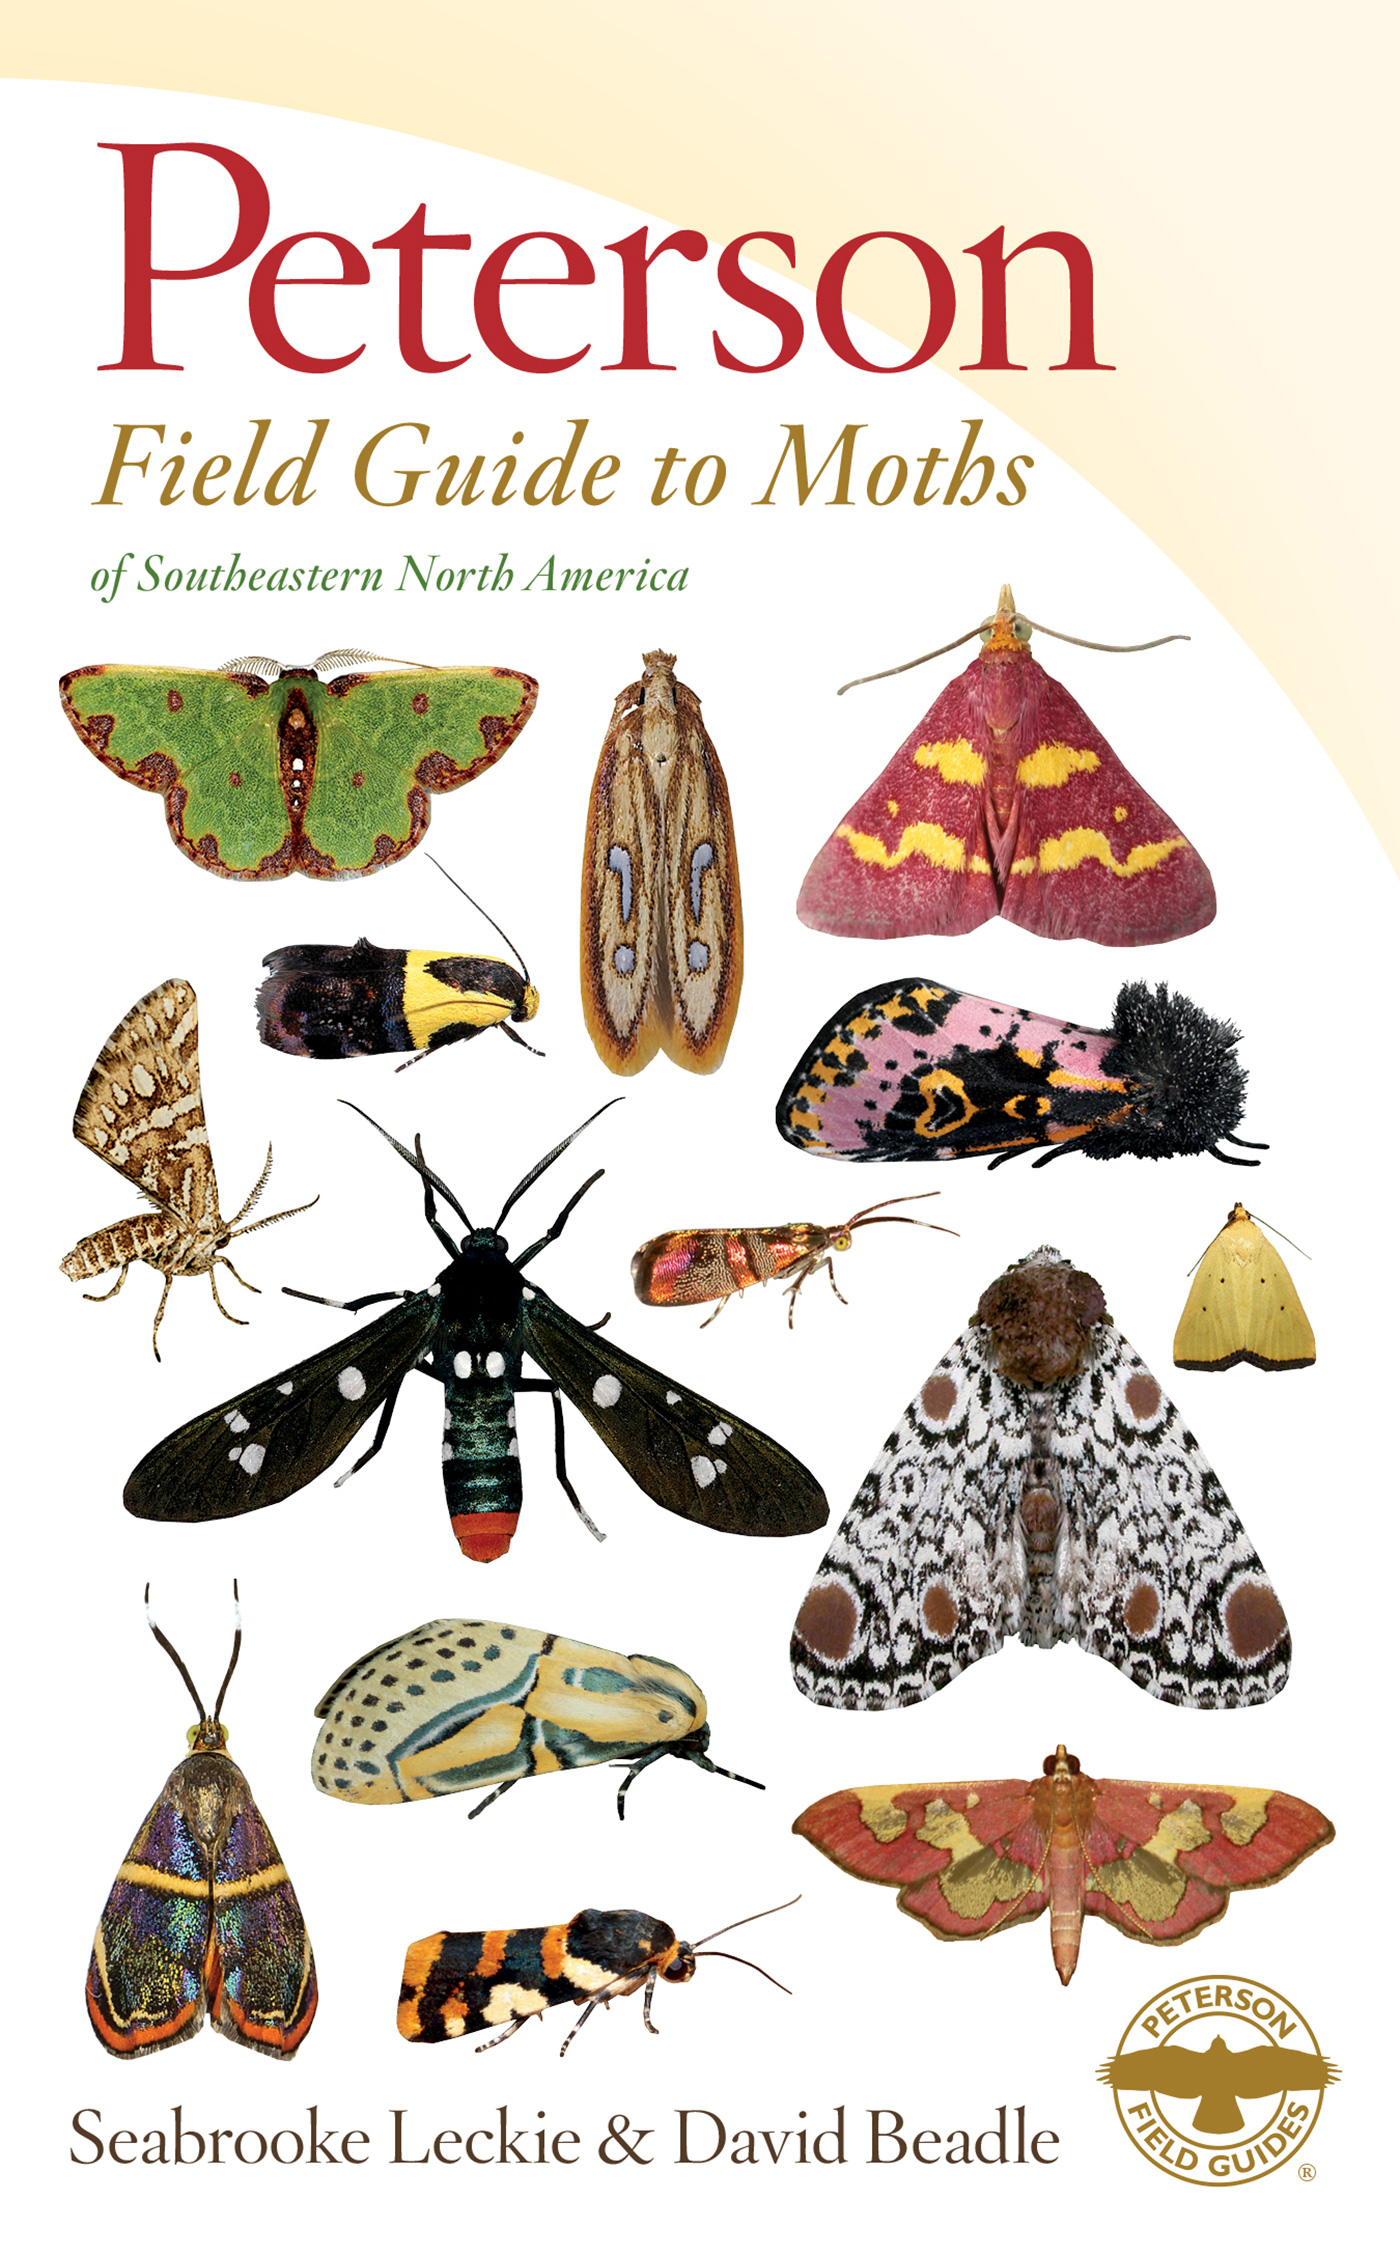 Peterson Field Guide to Moths of Southeastern North America-9780544252110